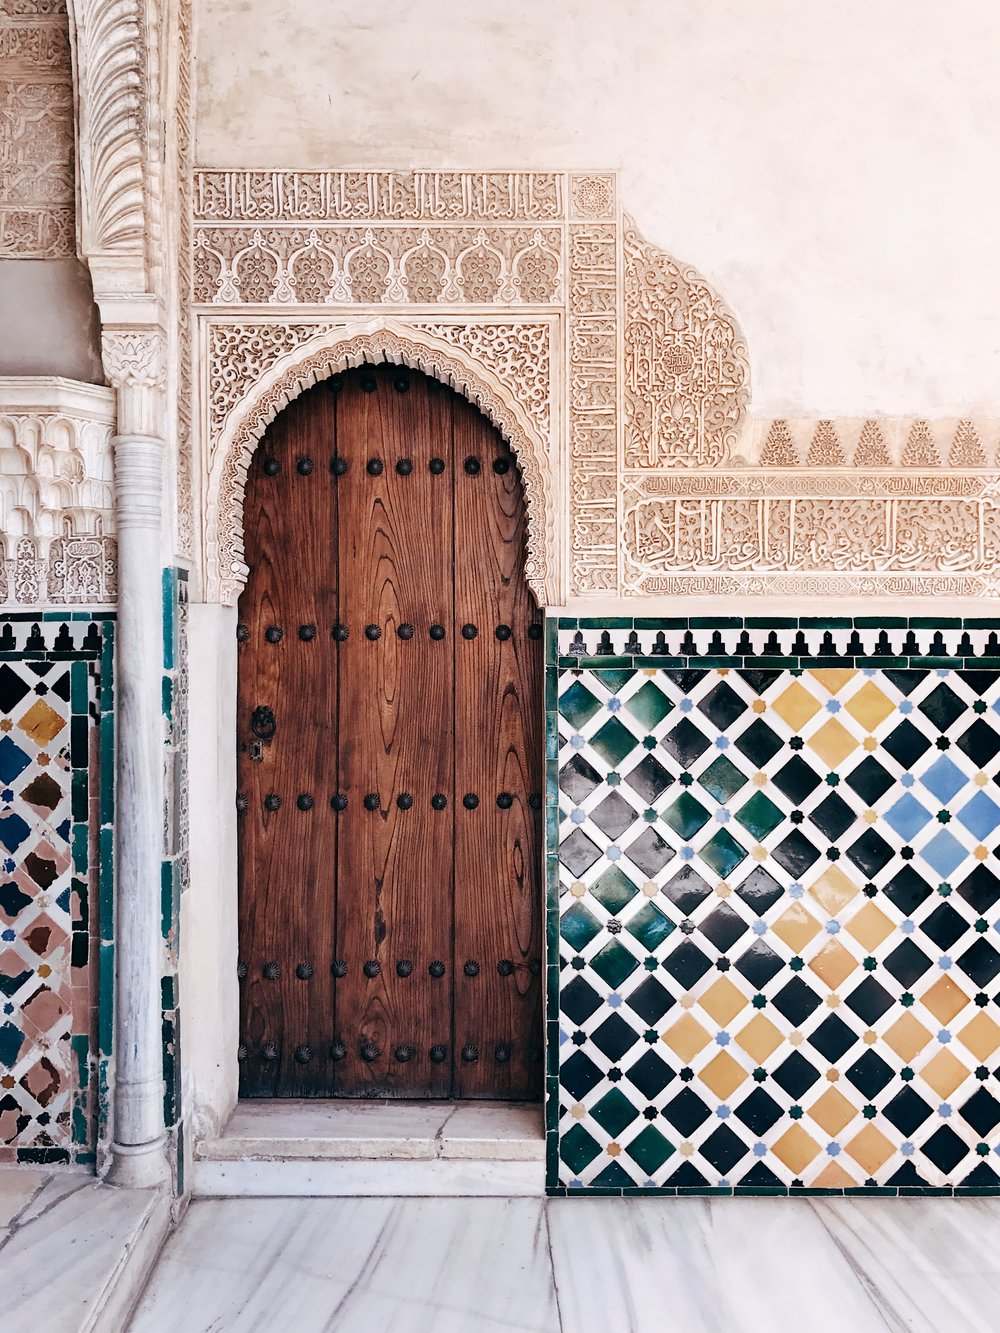 Image: Where to Travel in 2018 - Alhambra - Granada